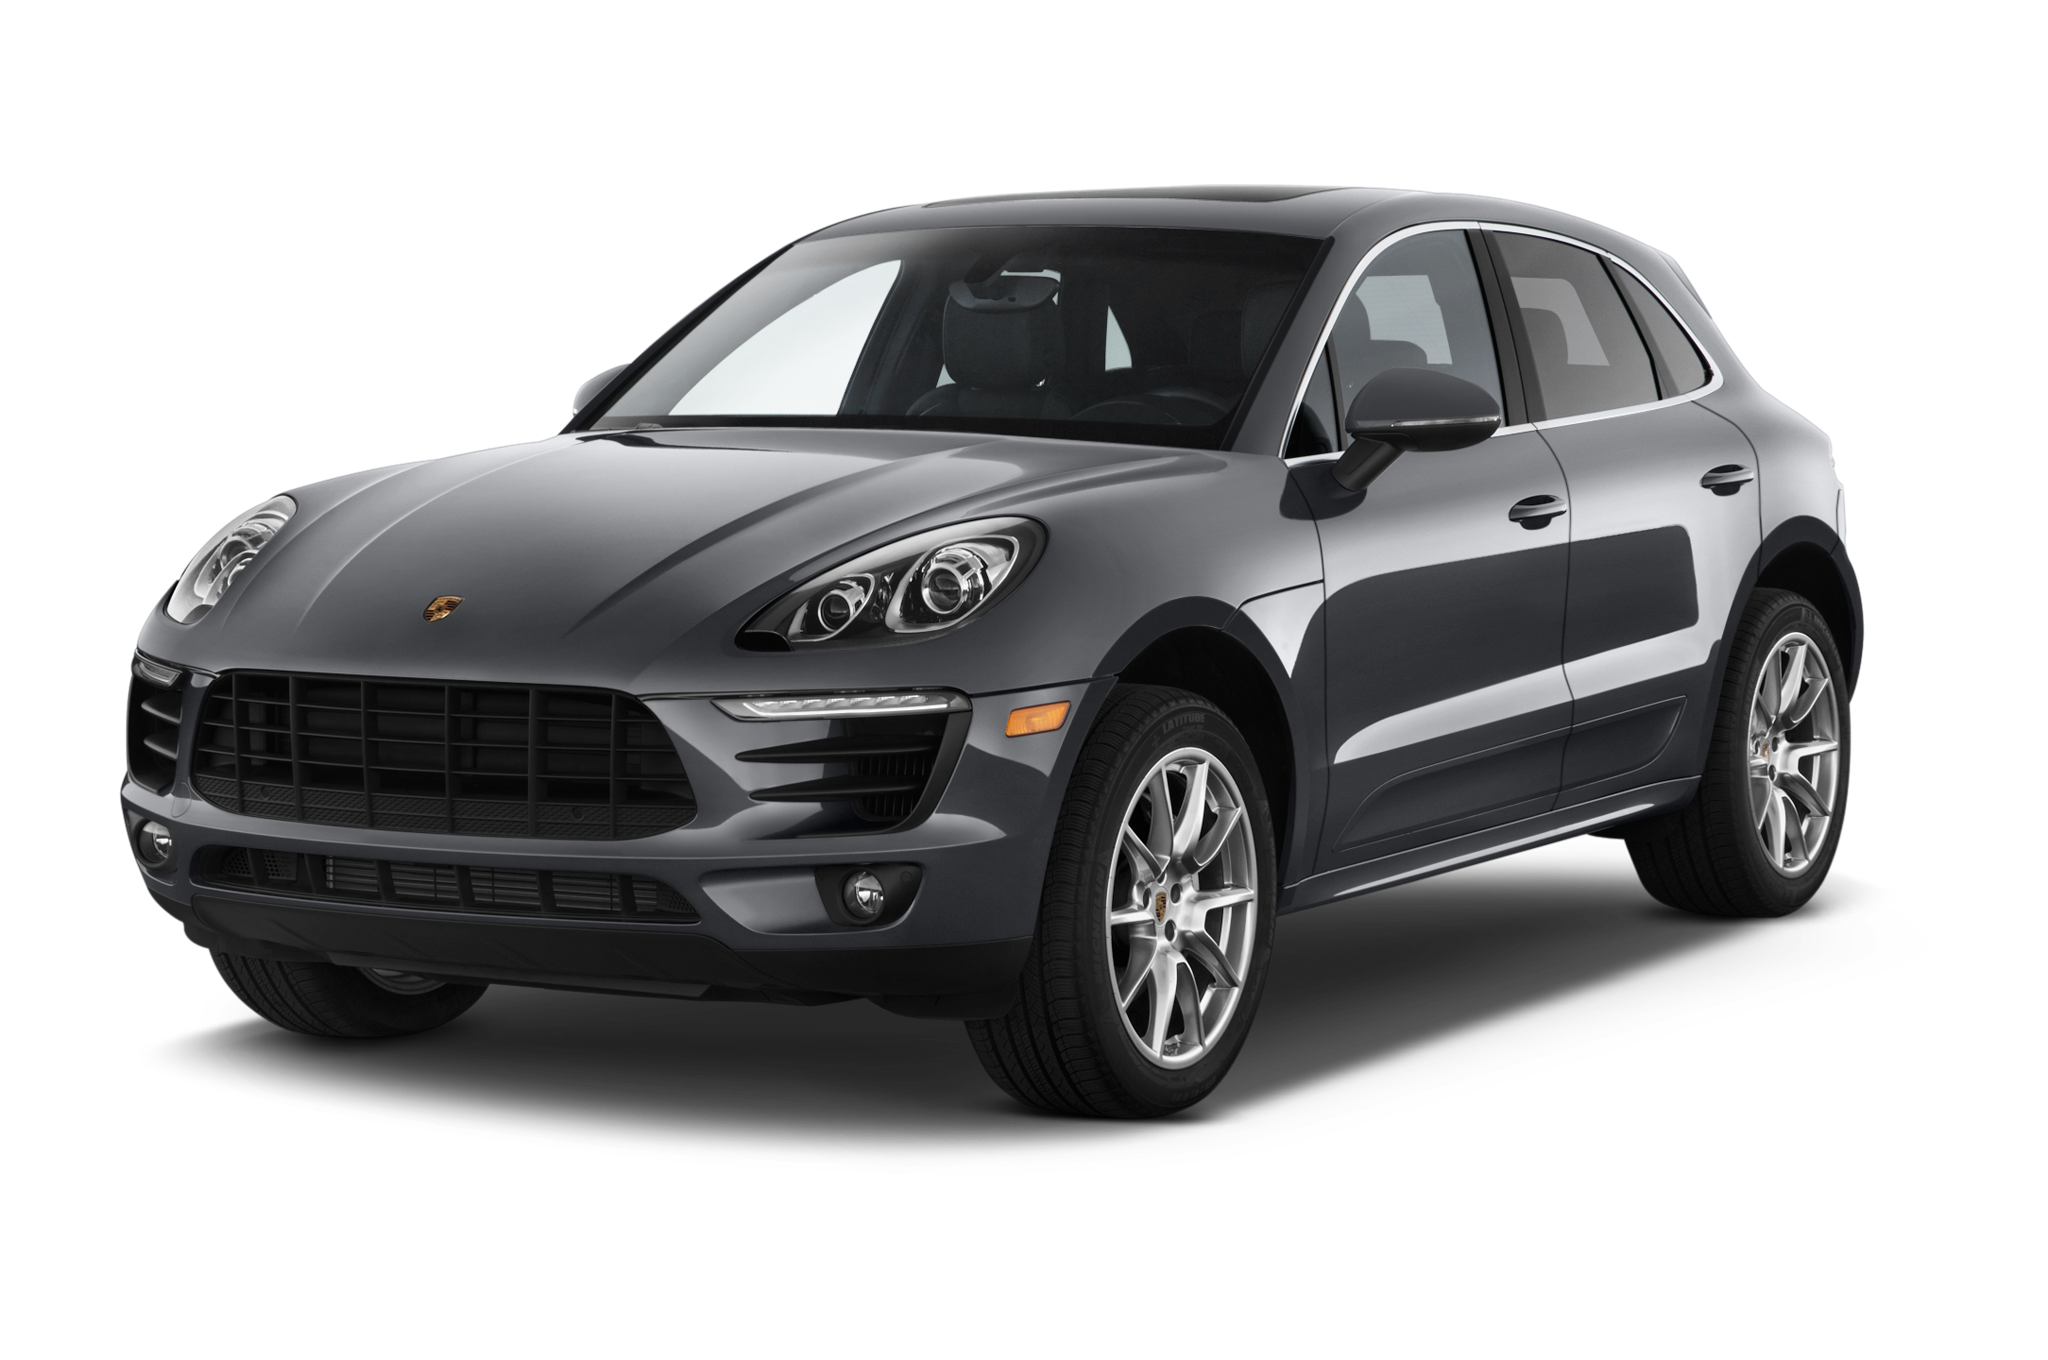 2017 porsche macan adds 252 hp turbo four base model automobile magazine. Black Bedroom Furniture Sets. Home Design Ideas